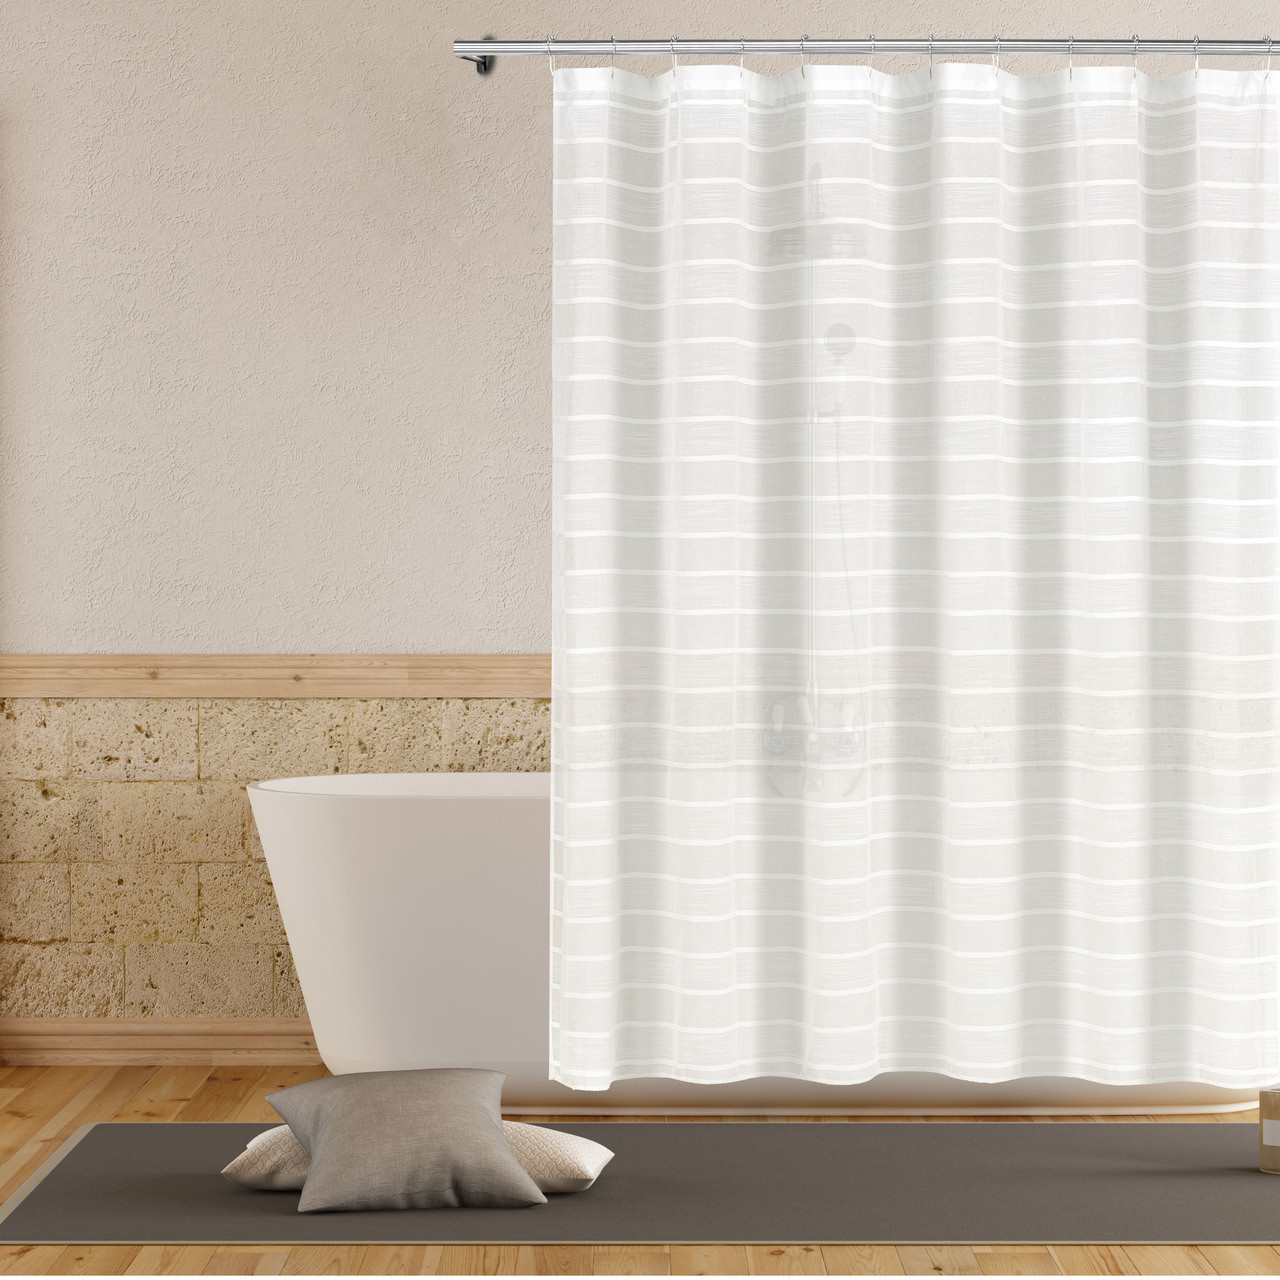 Bathroom And More Collection Sheer Fabric Shower Curtain White And Linen Beige Stripe Design Size Shower Curtain 72 L